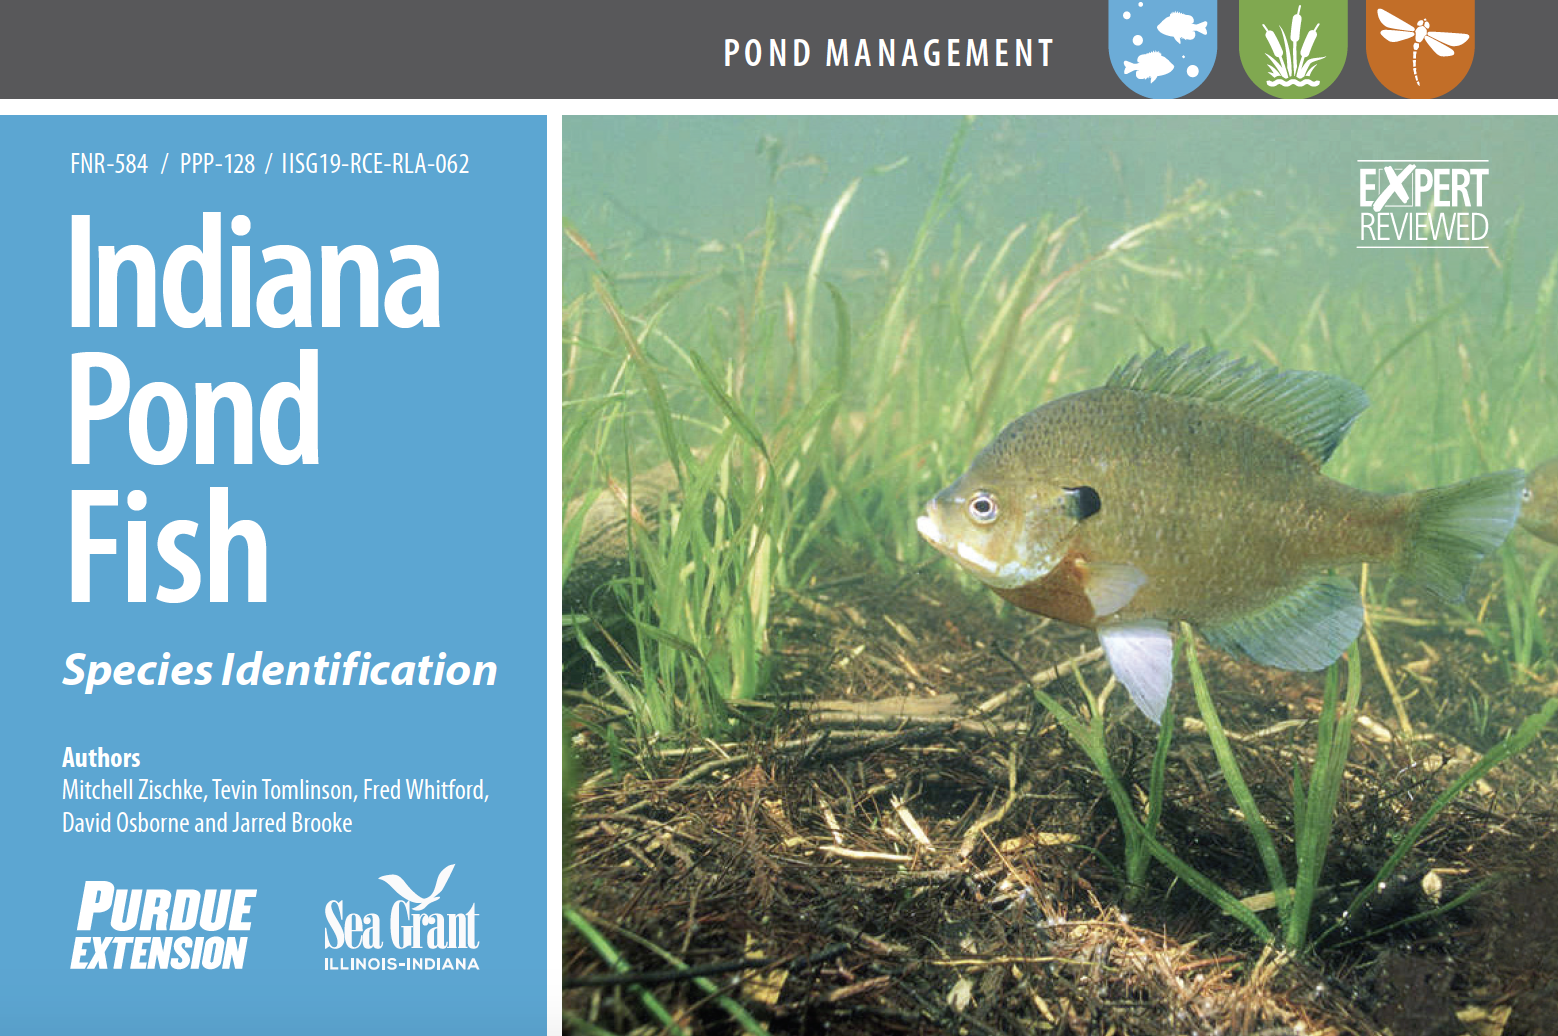 Indiana Pond Fish publication cover